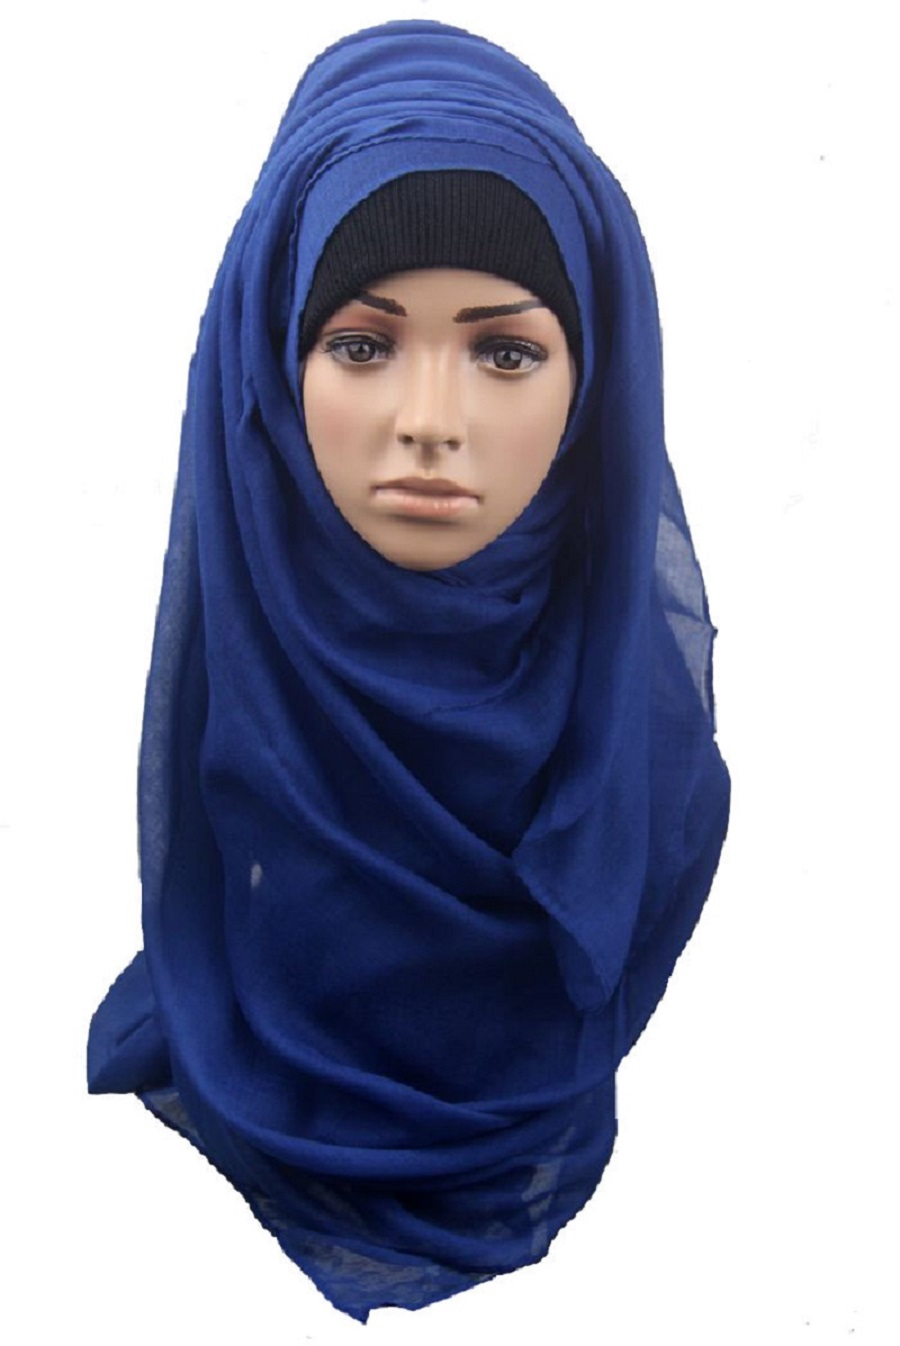 What is the Muslim female head covering called?